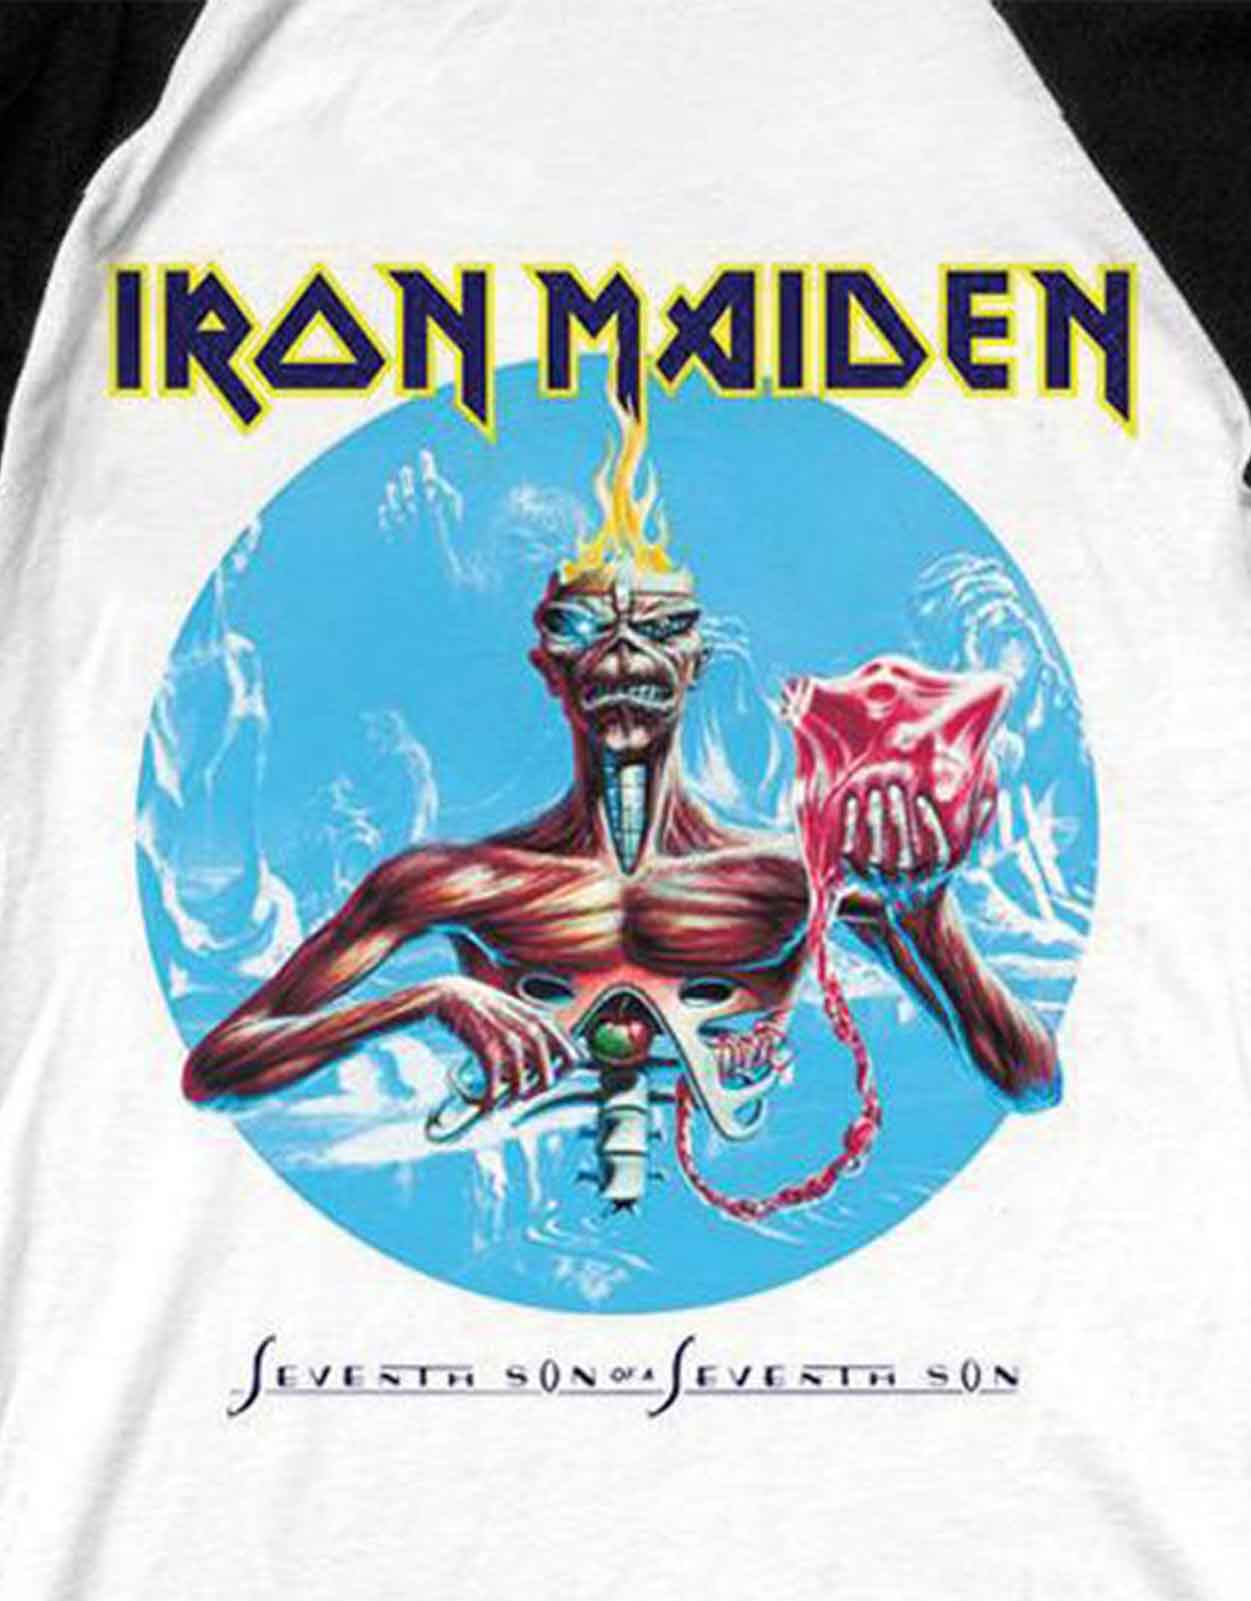 Iron-Maiden-T-Shirt-Homme-Livre-des-ames-piece-of-mind-new-Official-Baseball-Shirt miniature 11